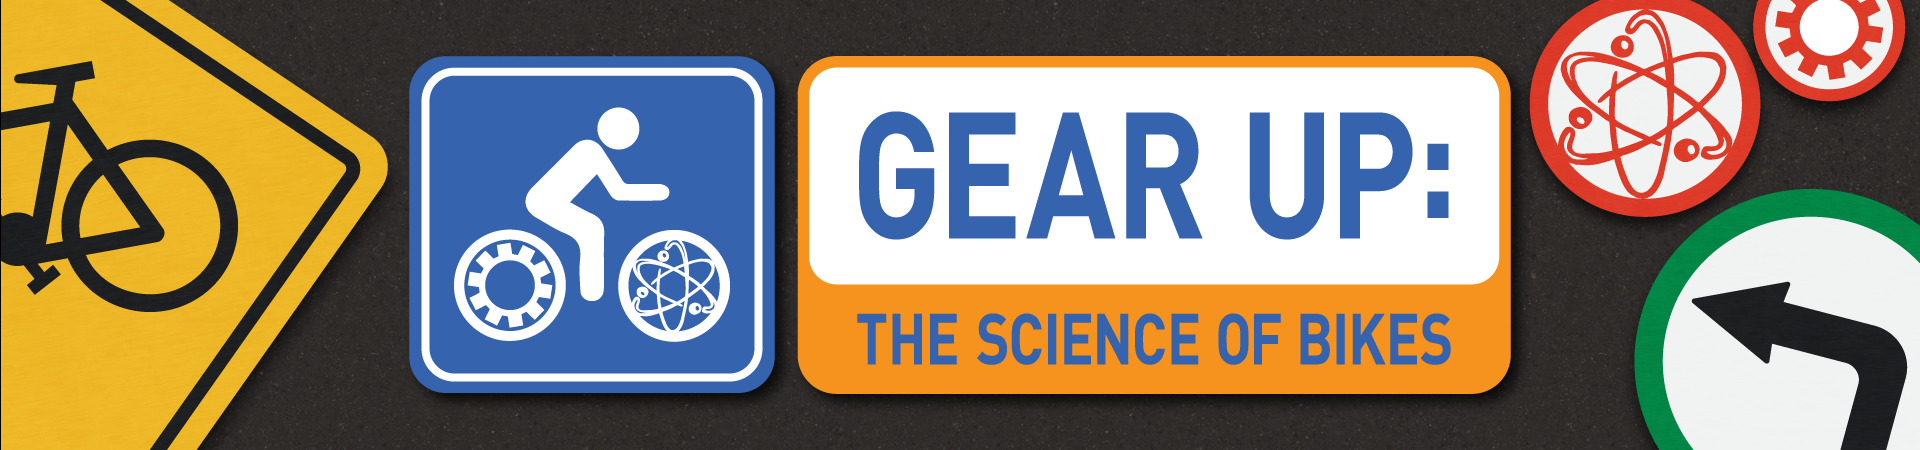 GEAR UP: The Science of Bikes